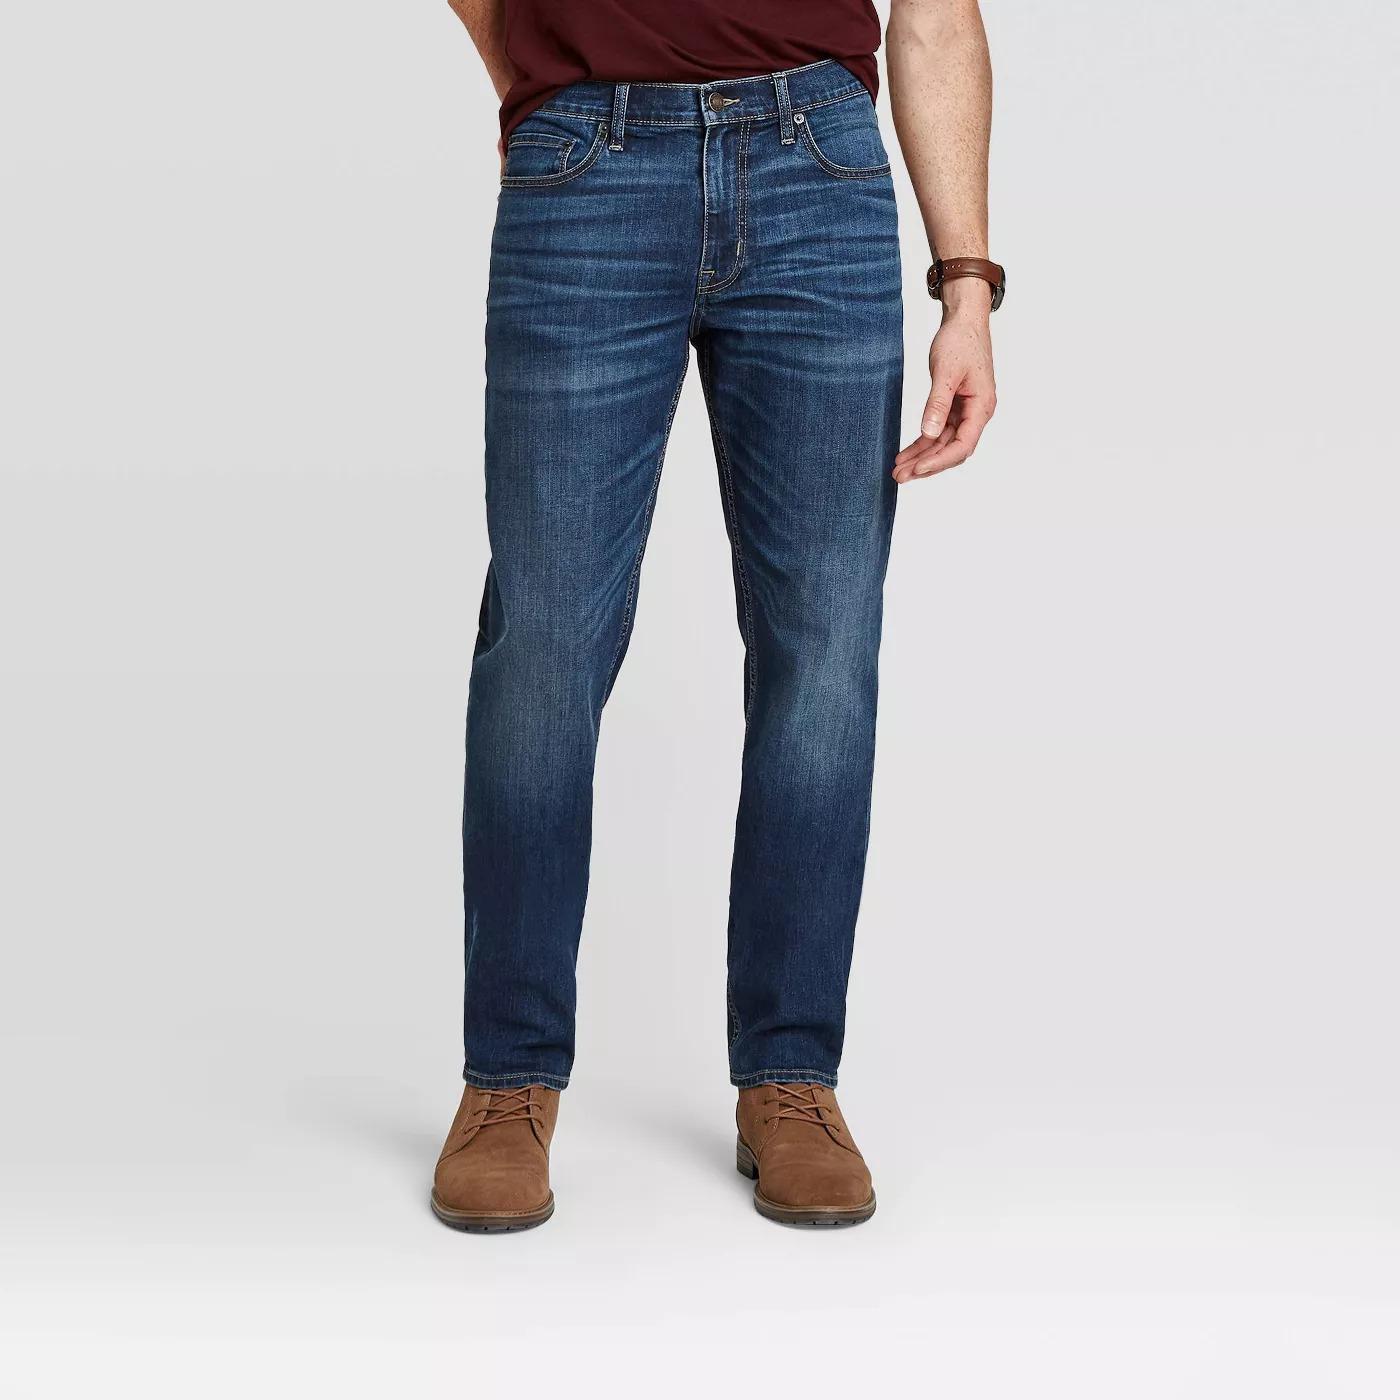 Goodfellow & Co Athletic Fit Jeans